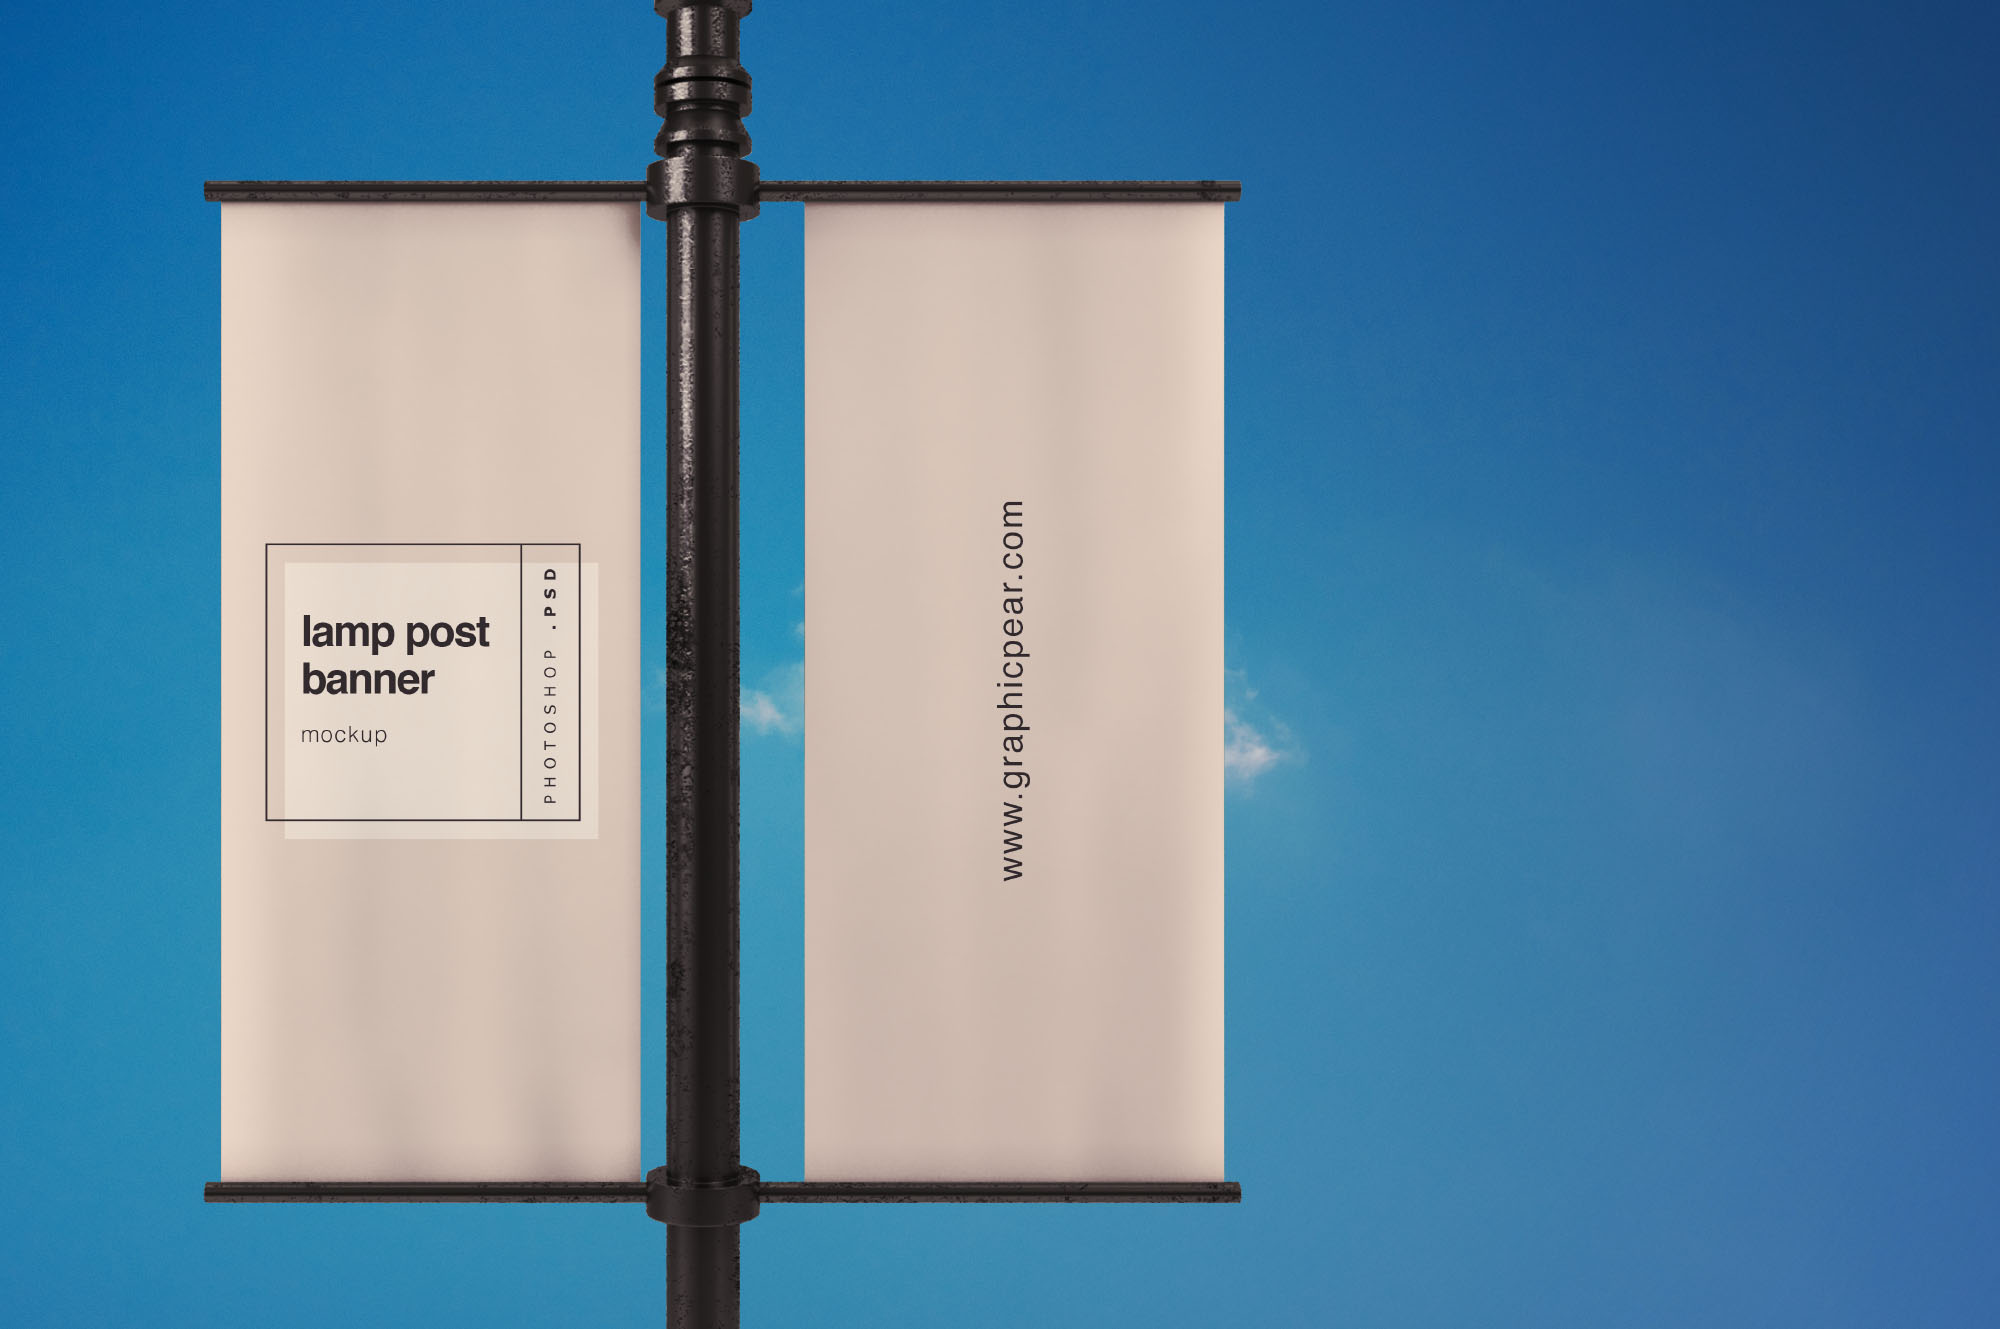 Lamp Post Banner Mockup PSD